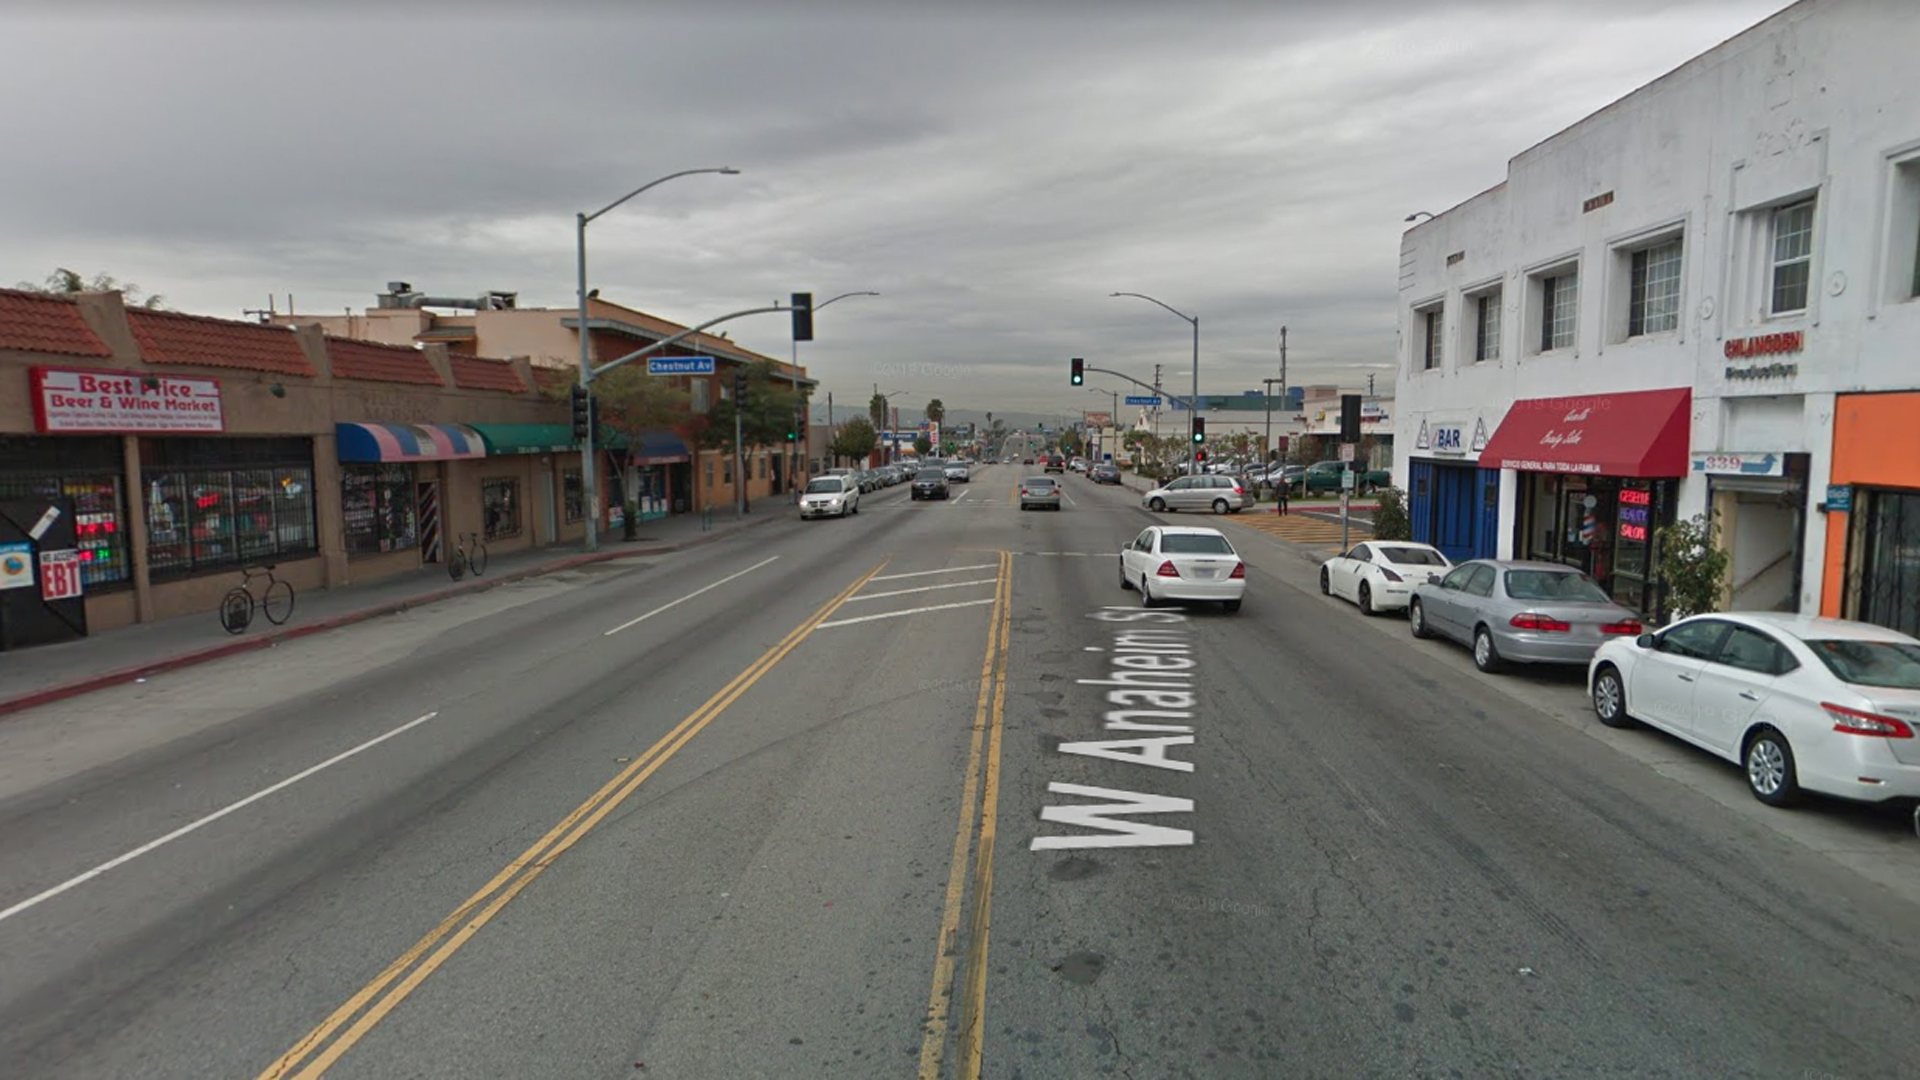 The 400 block of West Anaheim Street, as viewed in a Google Street View image.